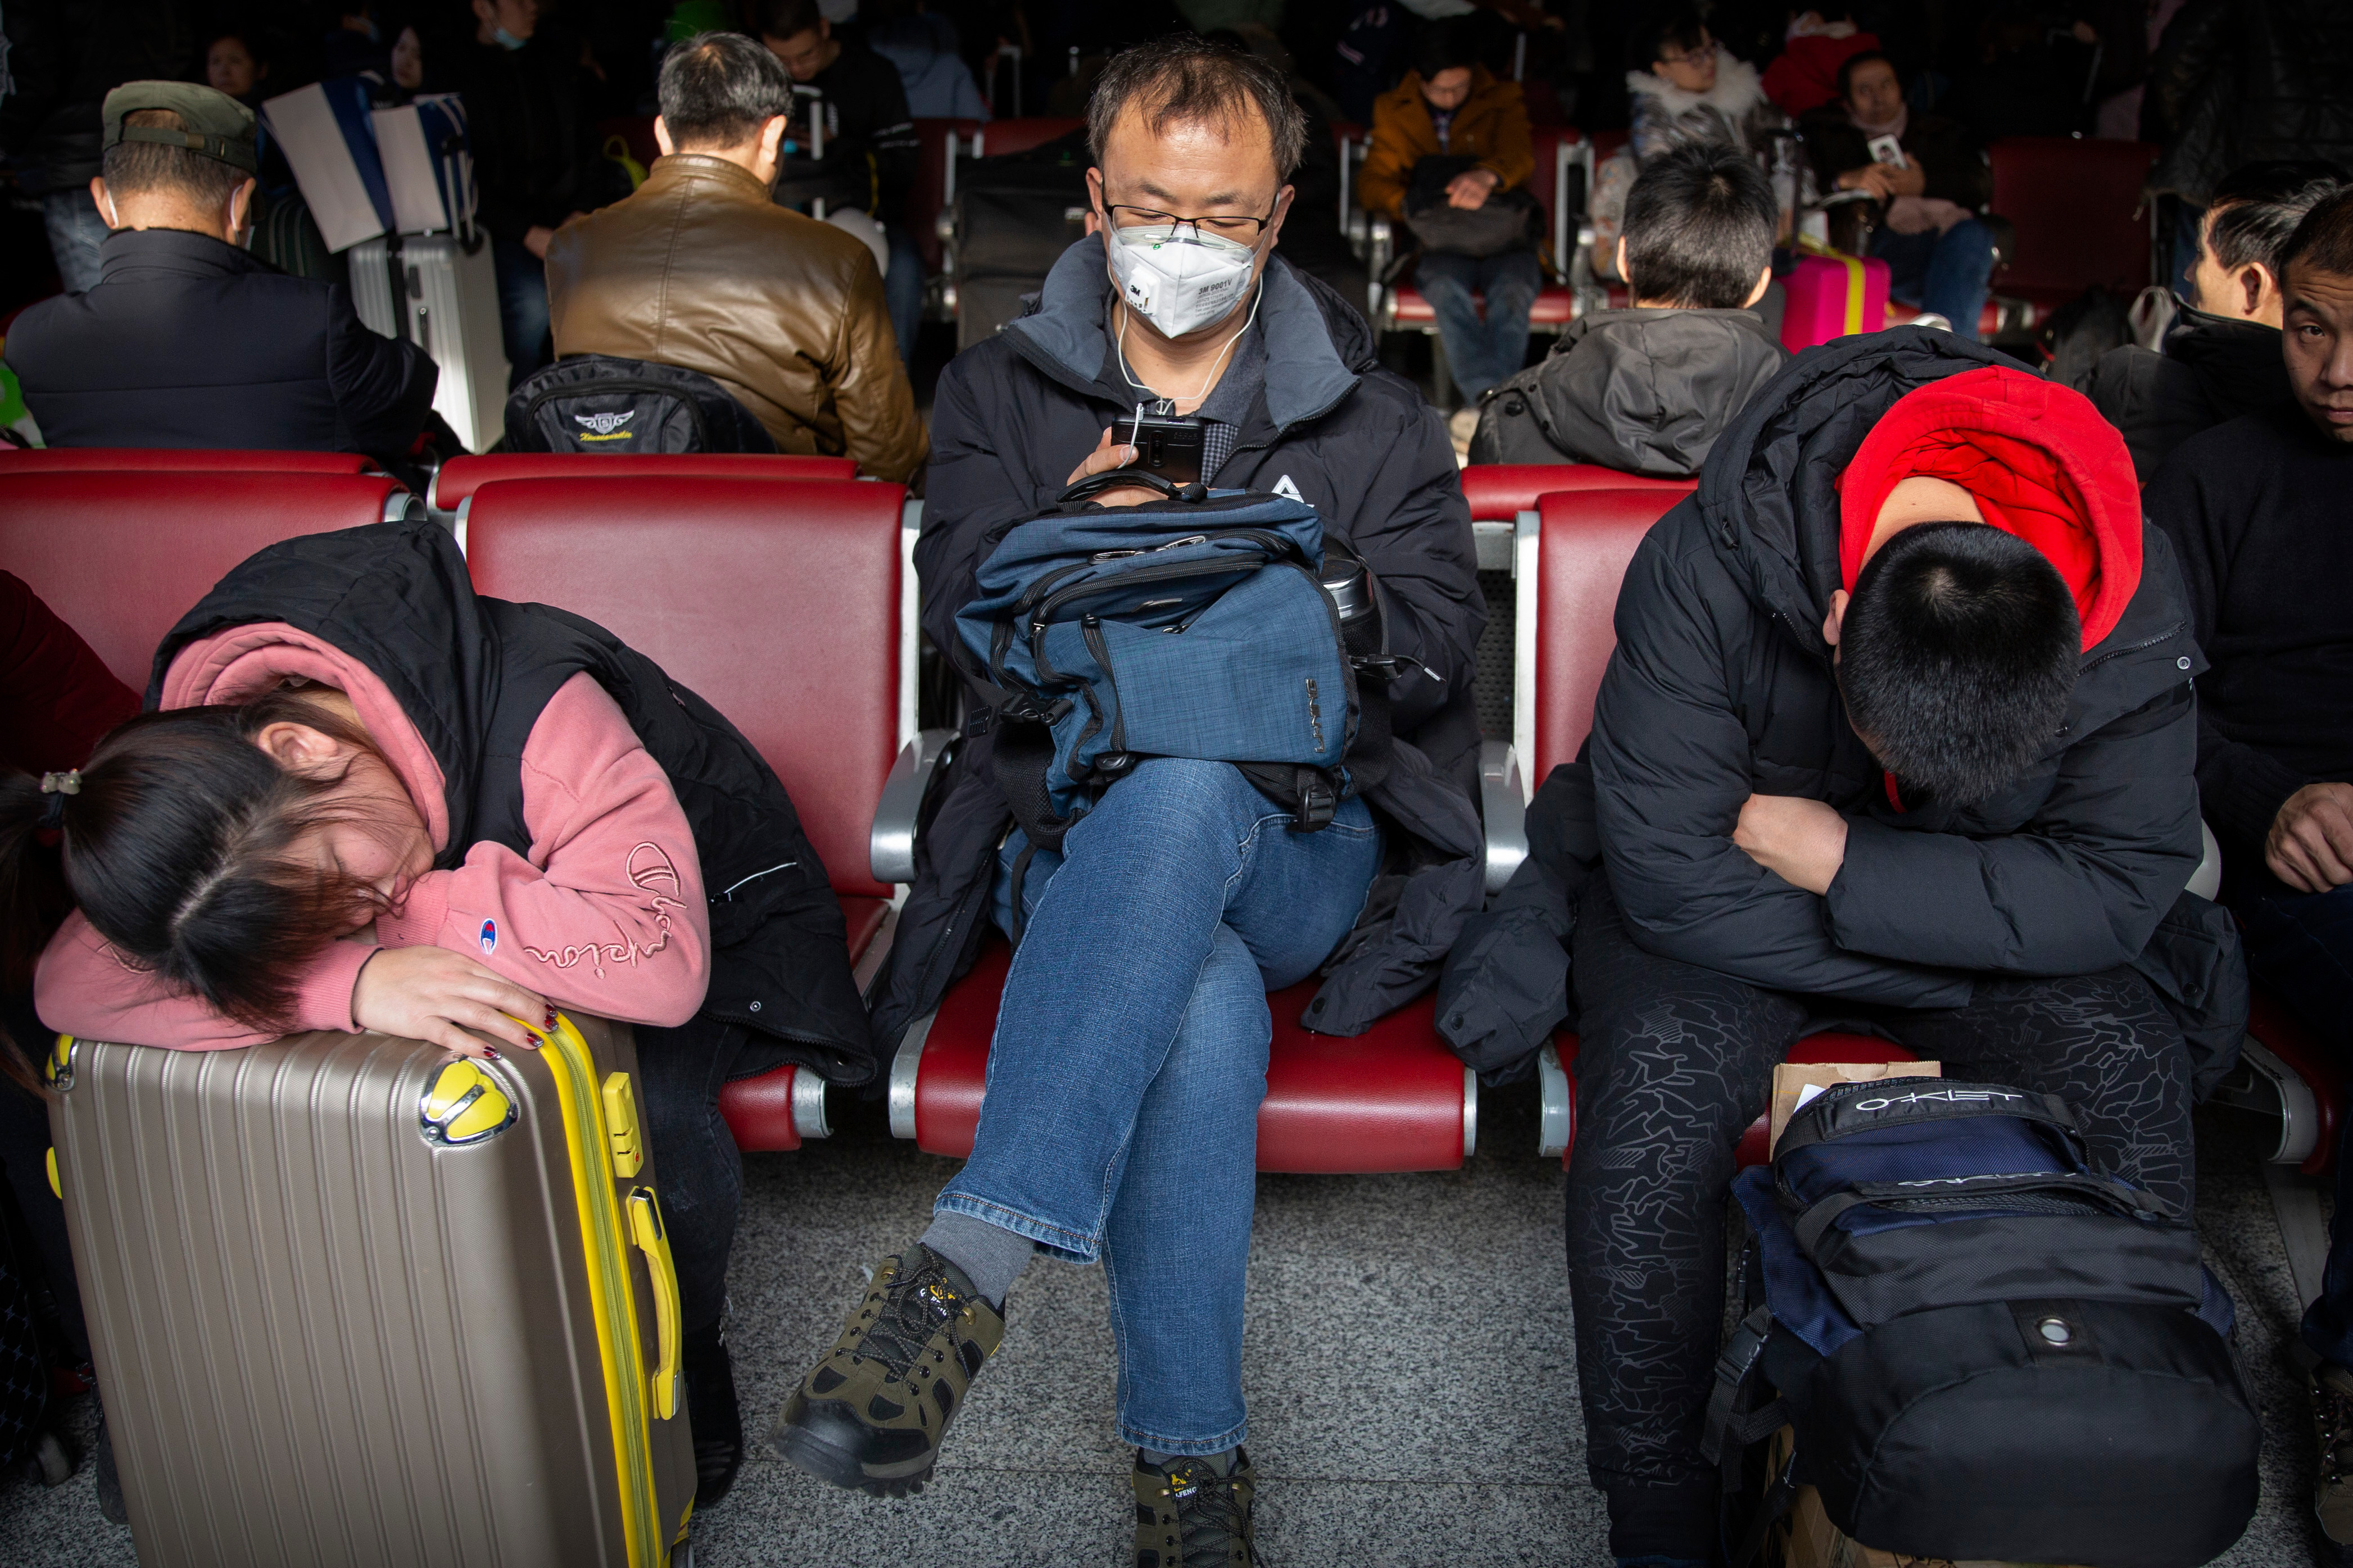 A traveller wears a face mask as he sits in a waiting room at the Beijing West Railway Station